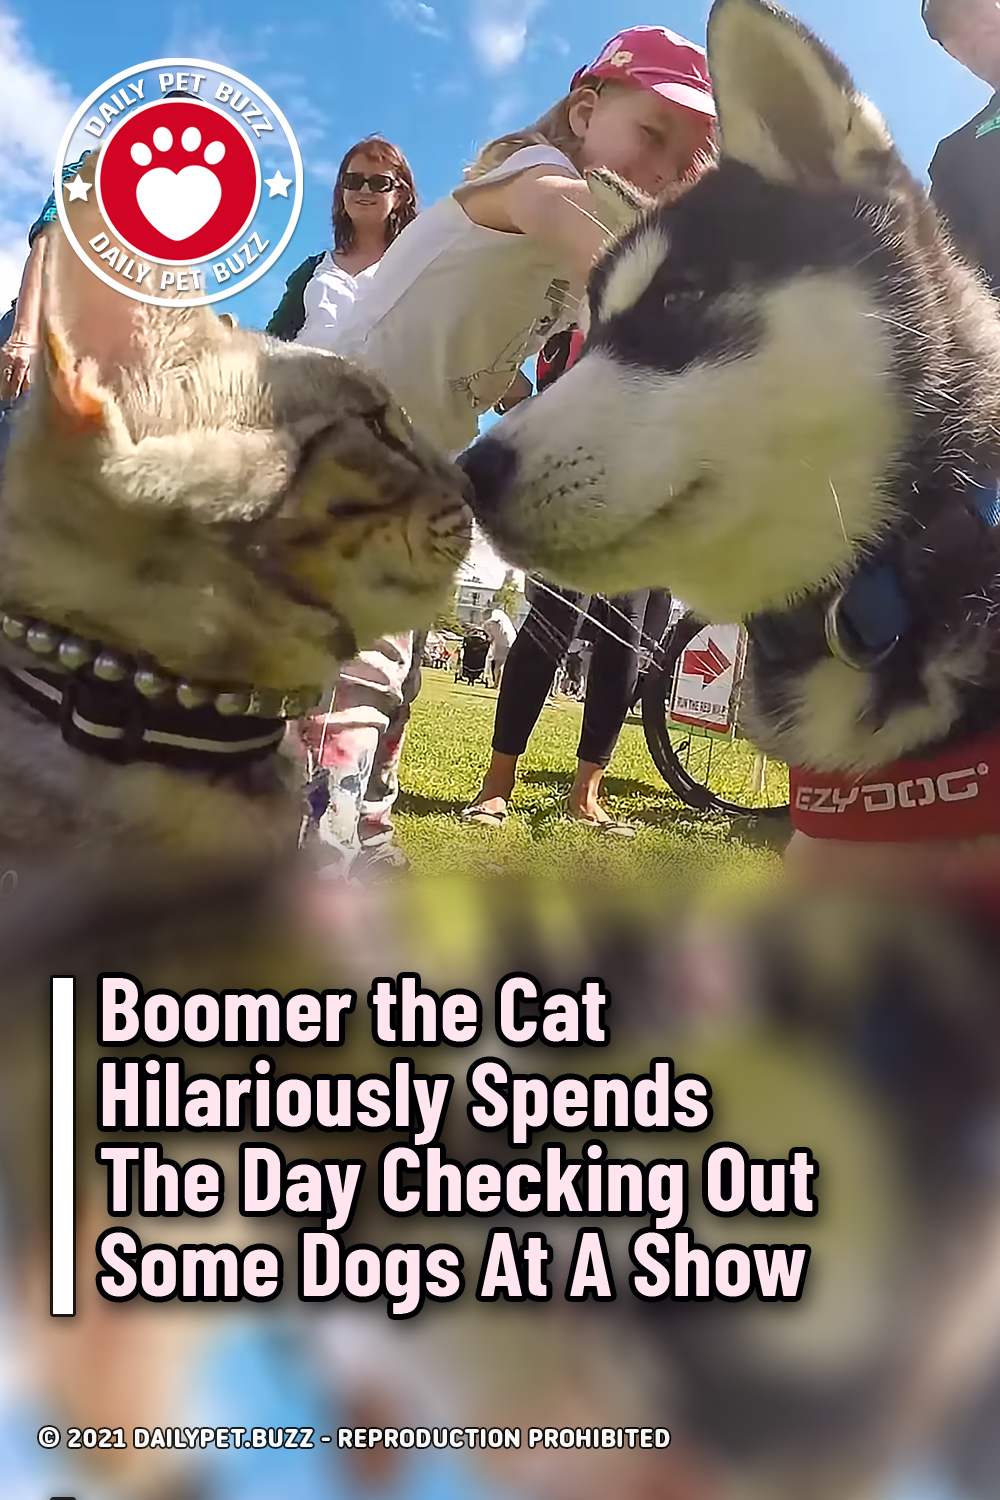 Boomer the Cat Hilariously Spends The Day Checking Out Some Dogs At A Show